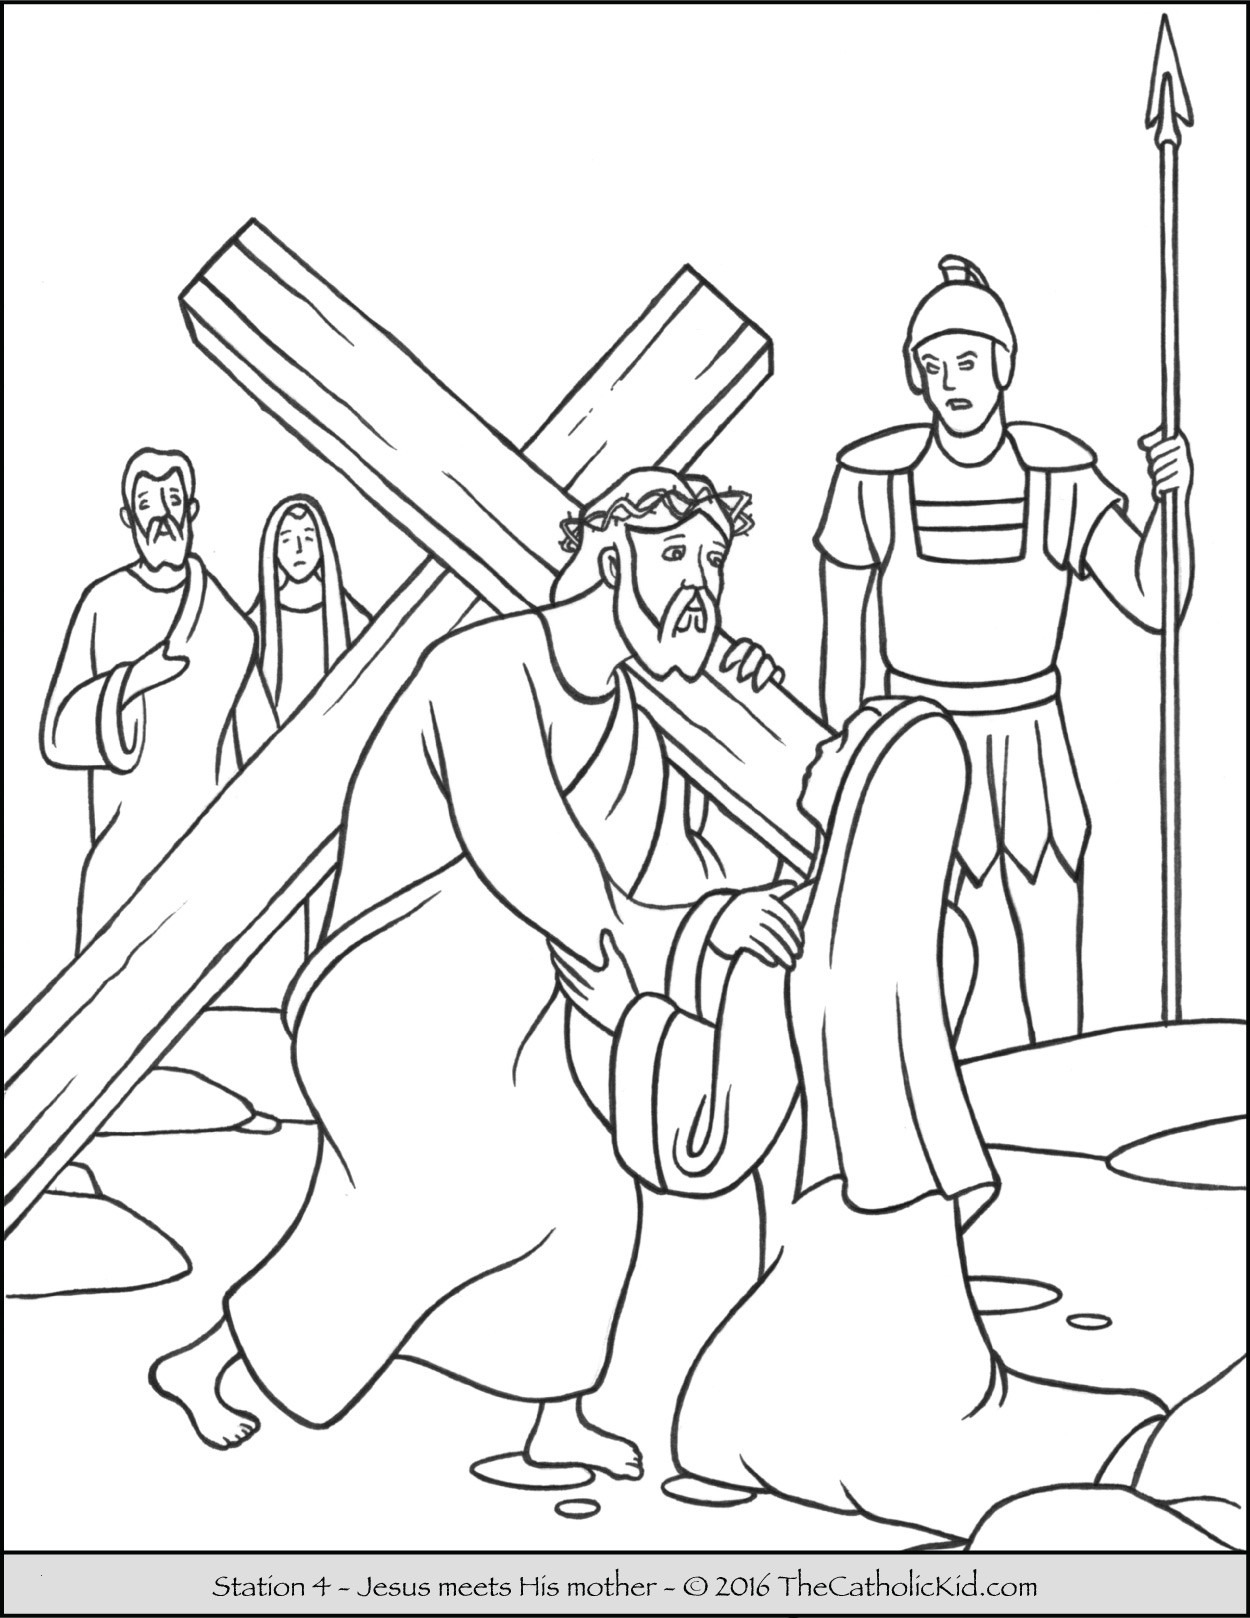 Coloring Pages Jesus ascension  to Print 8e - Free For Children